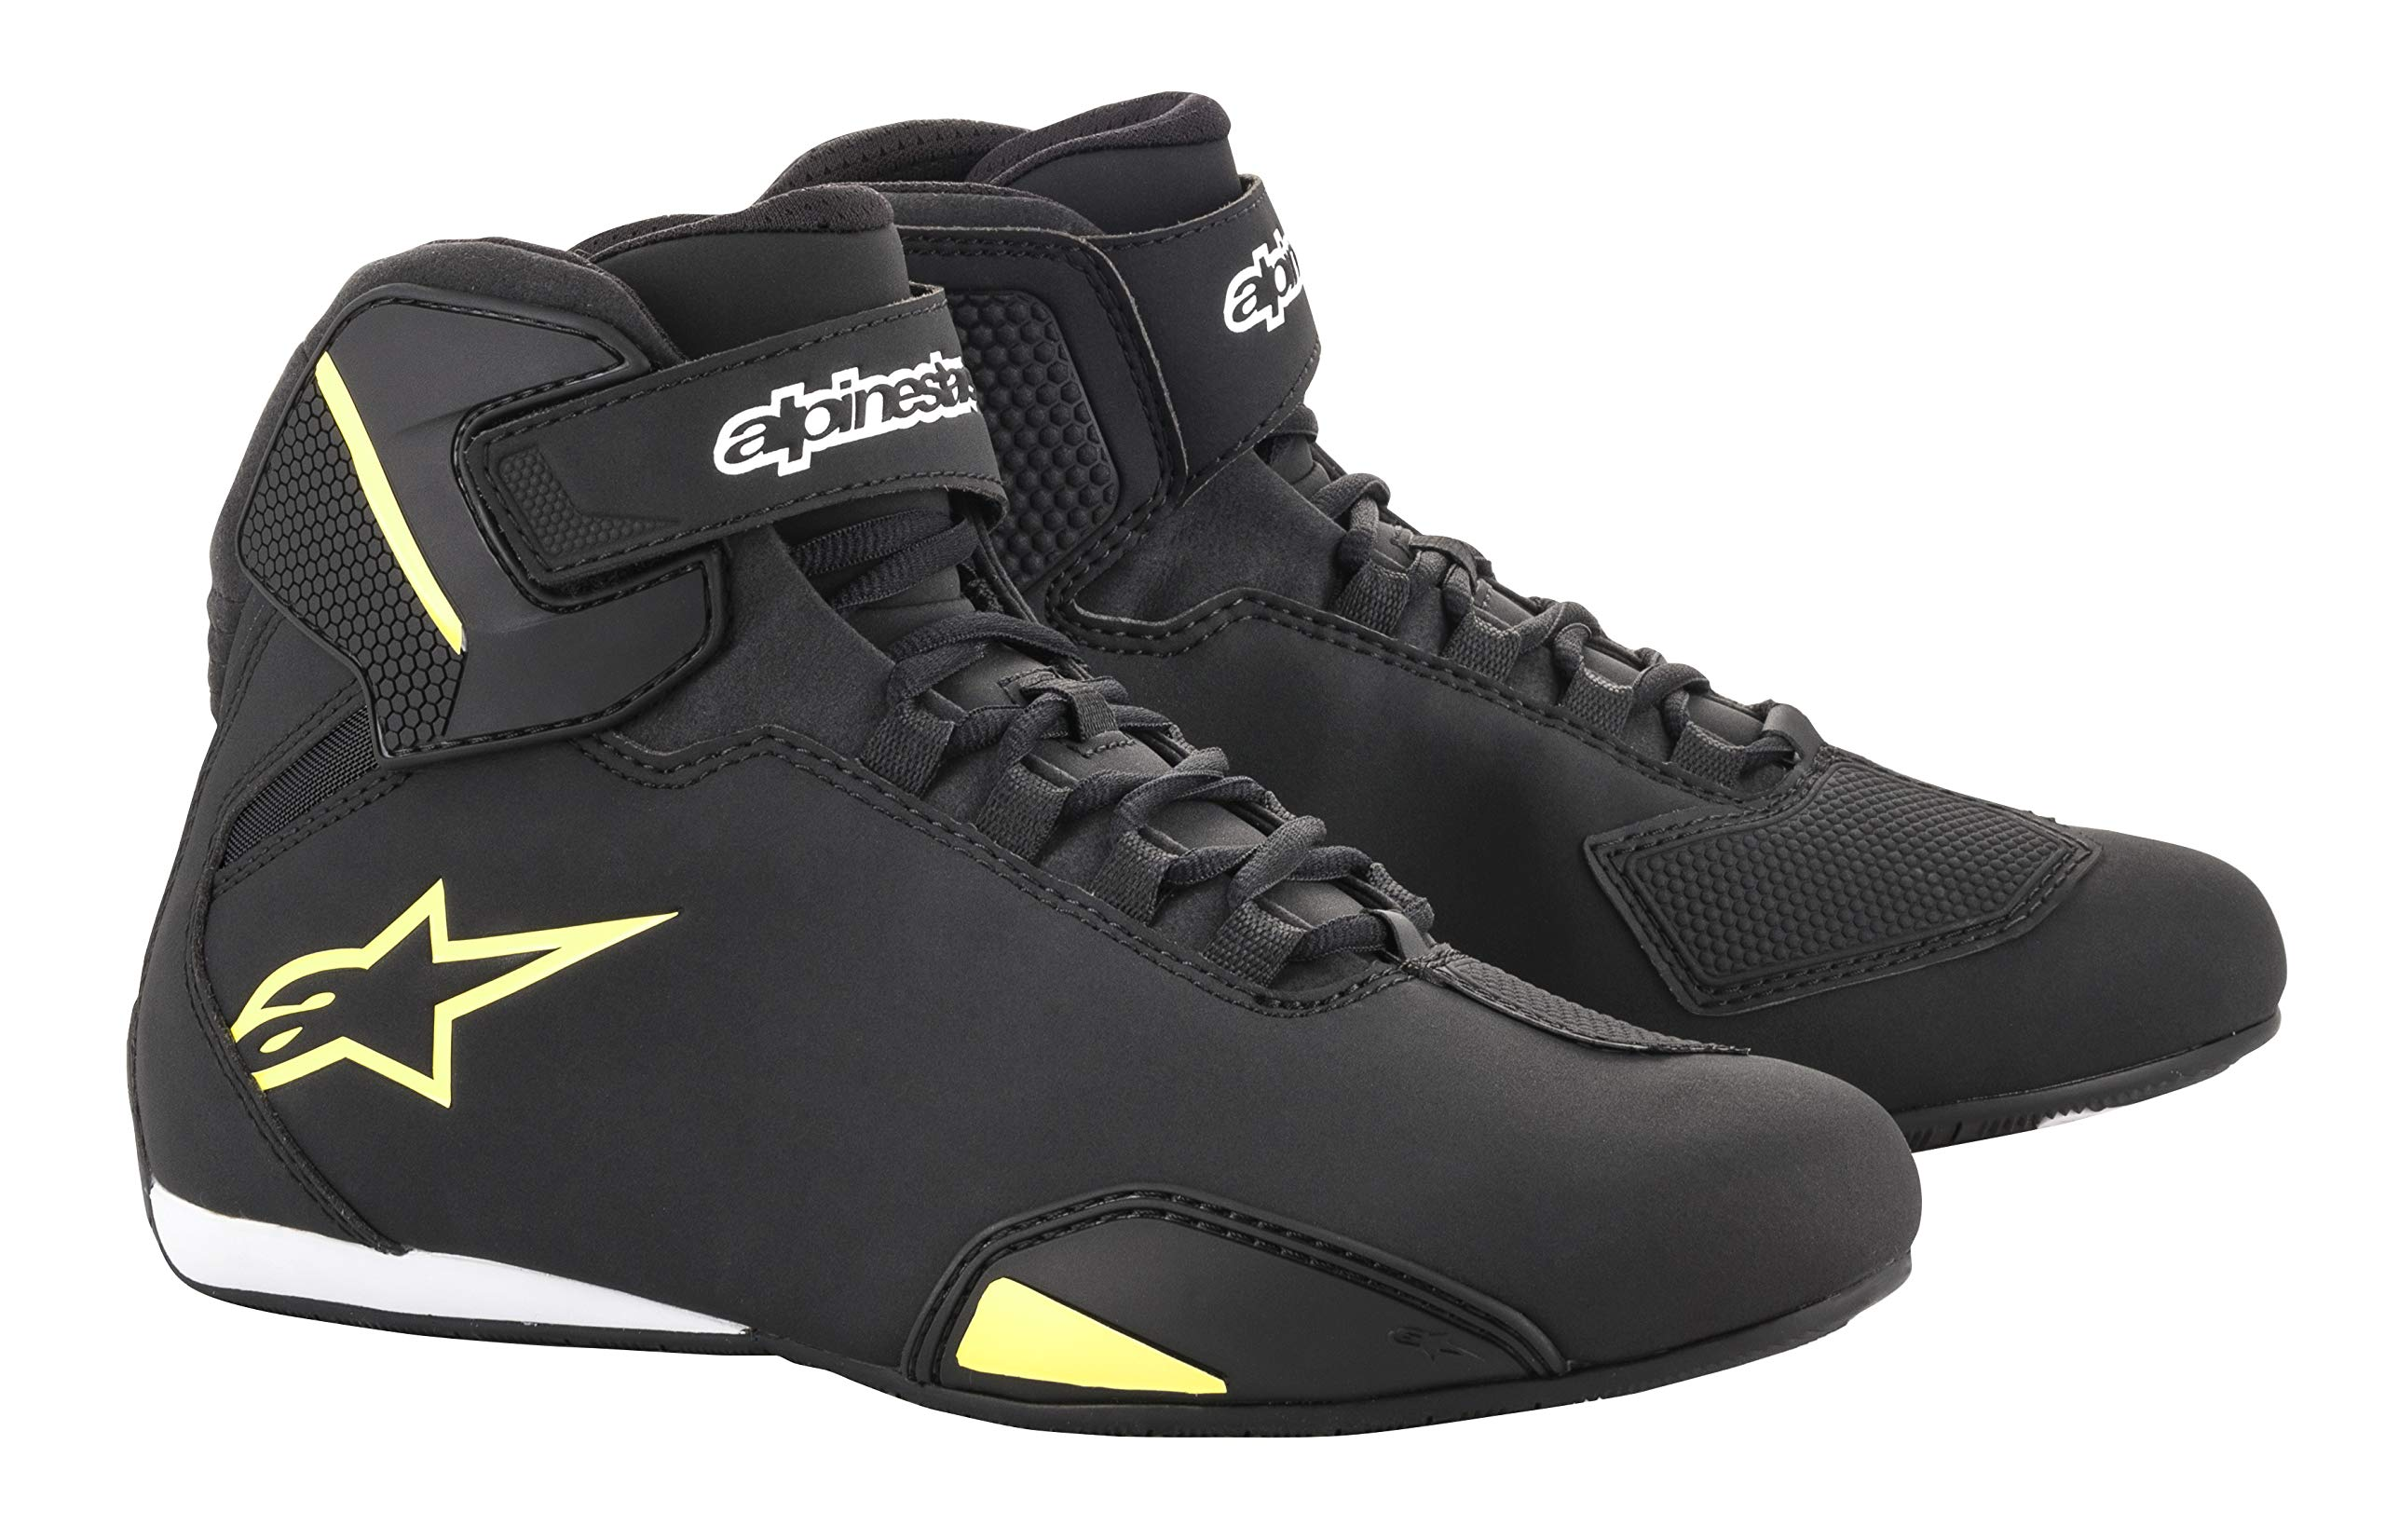 Alpinestars Men's Sektor Road/Riding Shoe